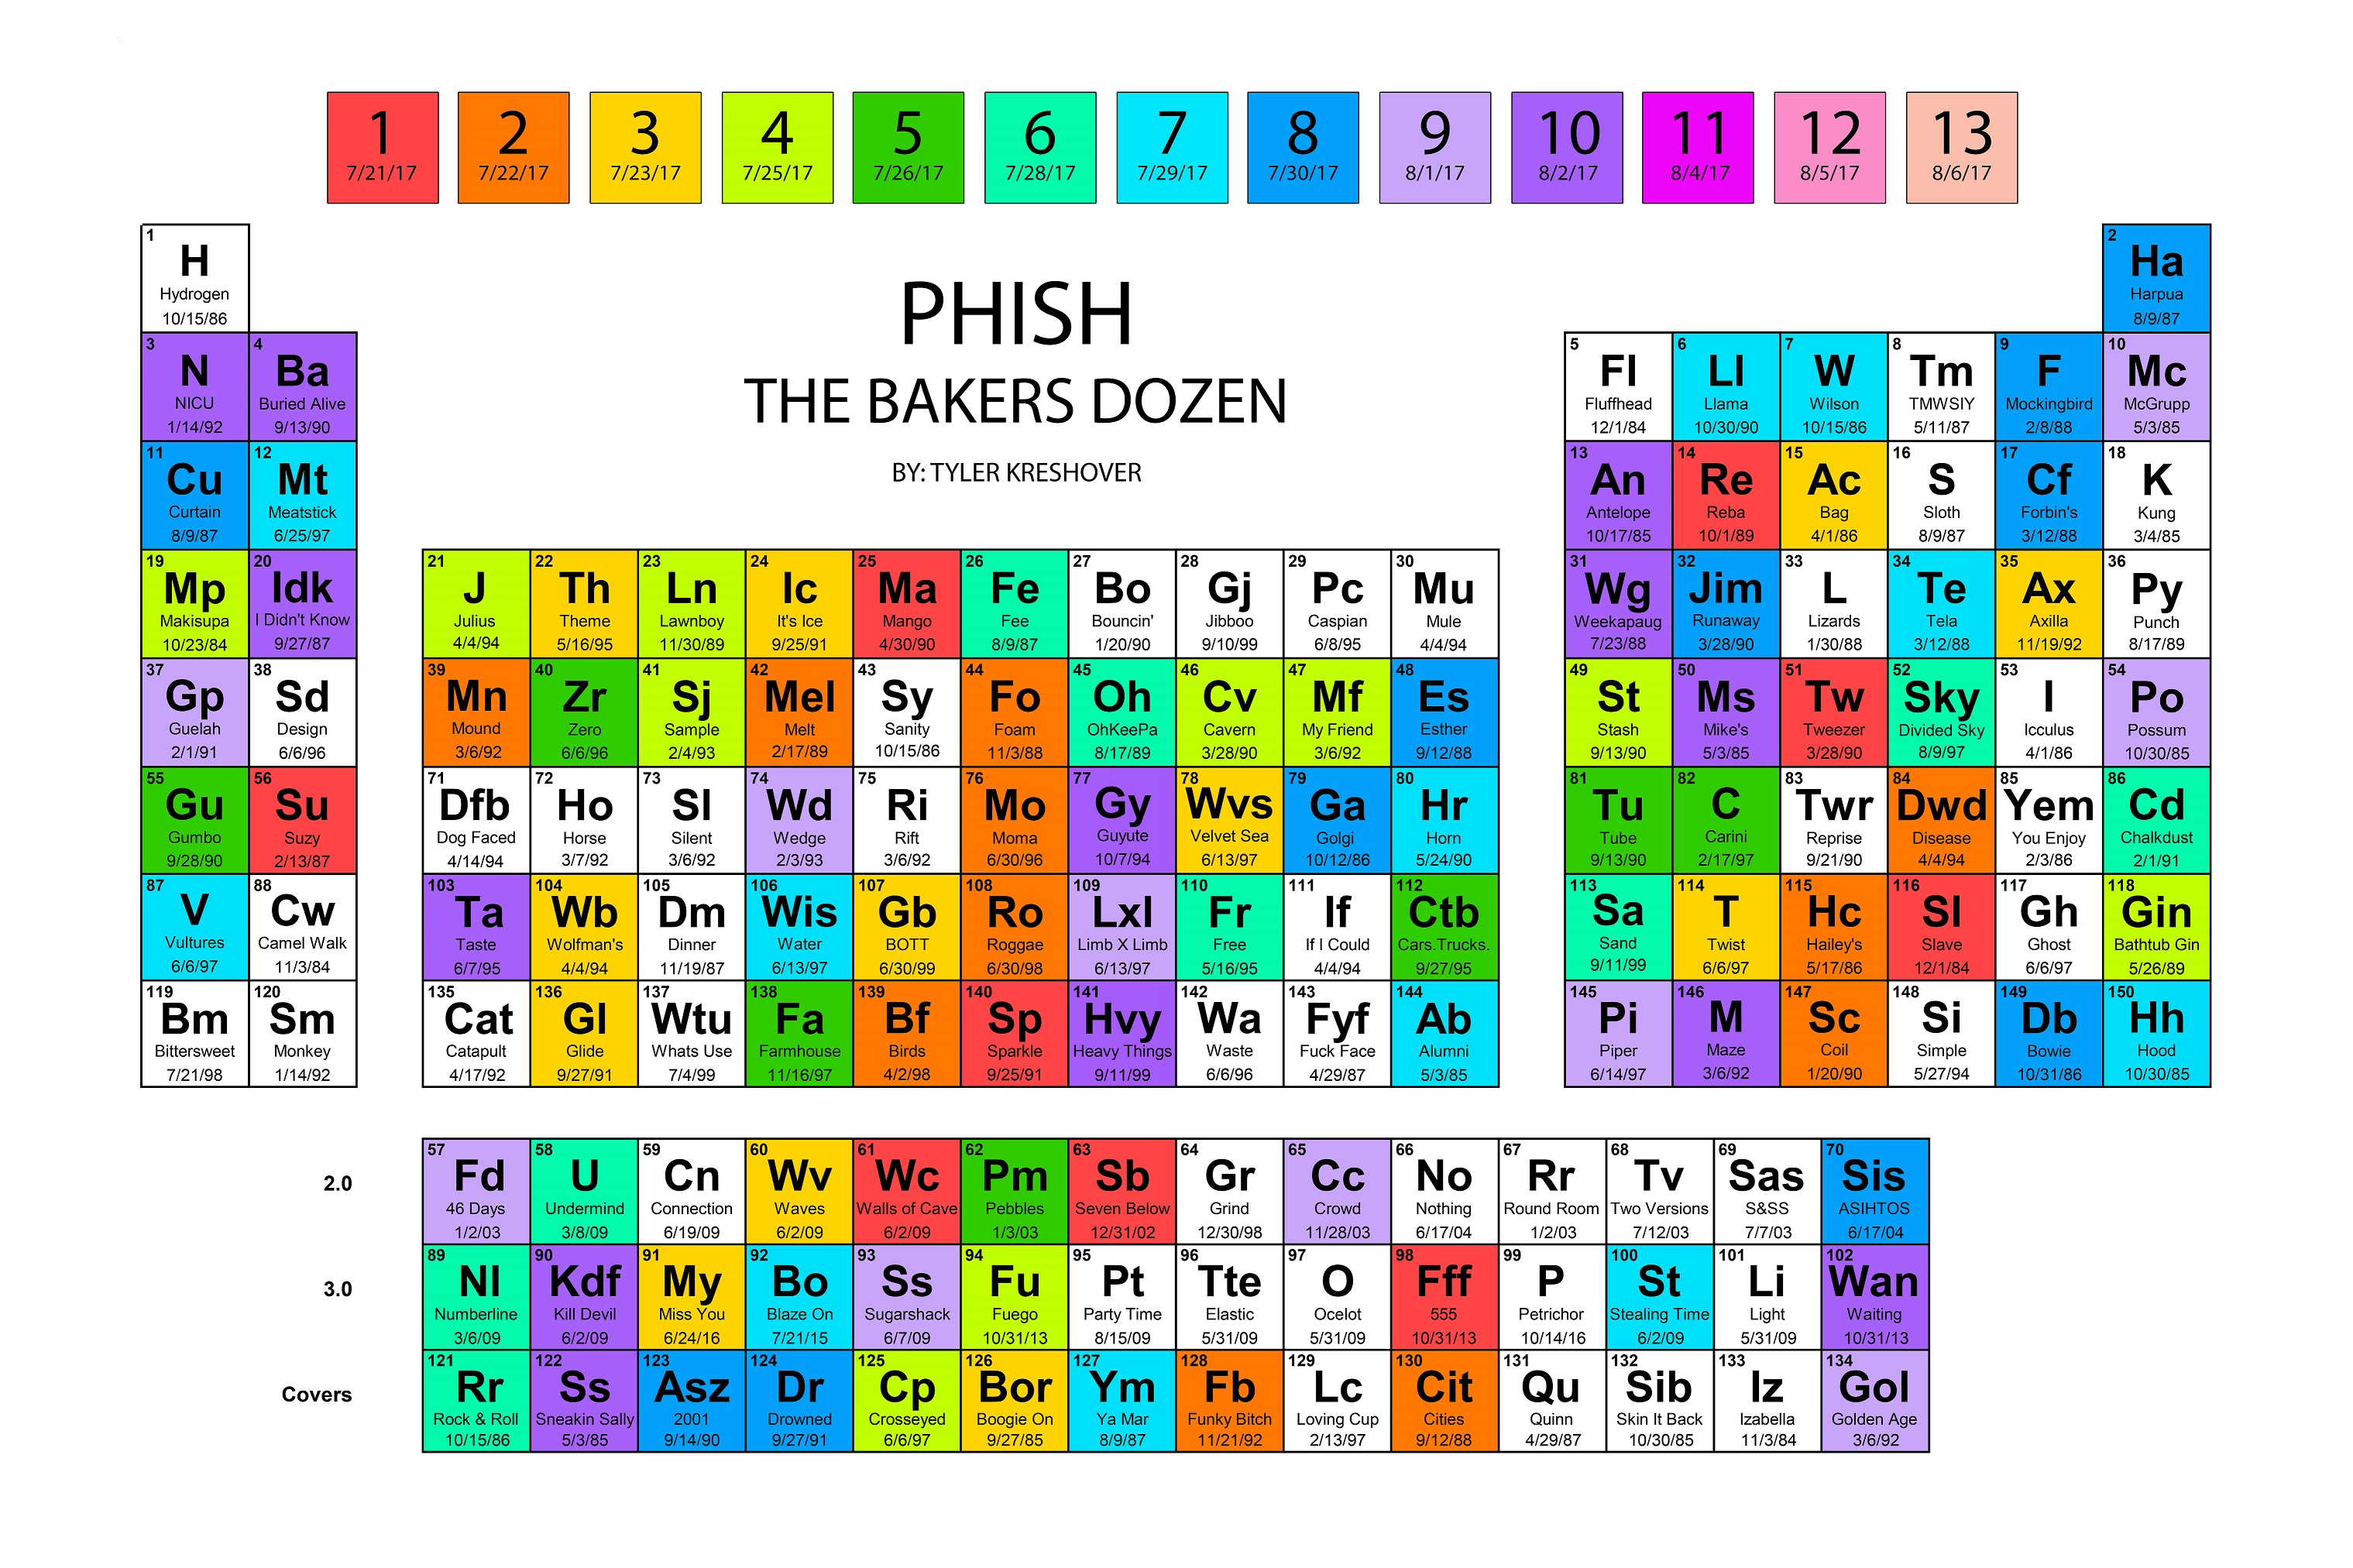 Periodic table songs image collections periodic table images icymi phishy bakers dozen periodic table phish photo tyler kreshover gamestrikefo image collections gamestrikefo Image collections